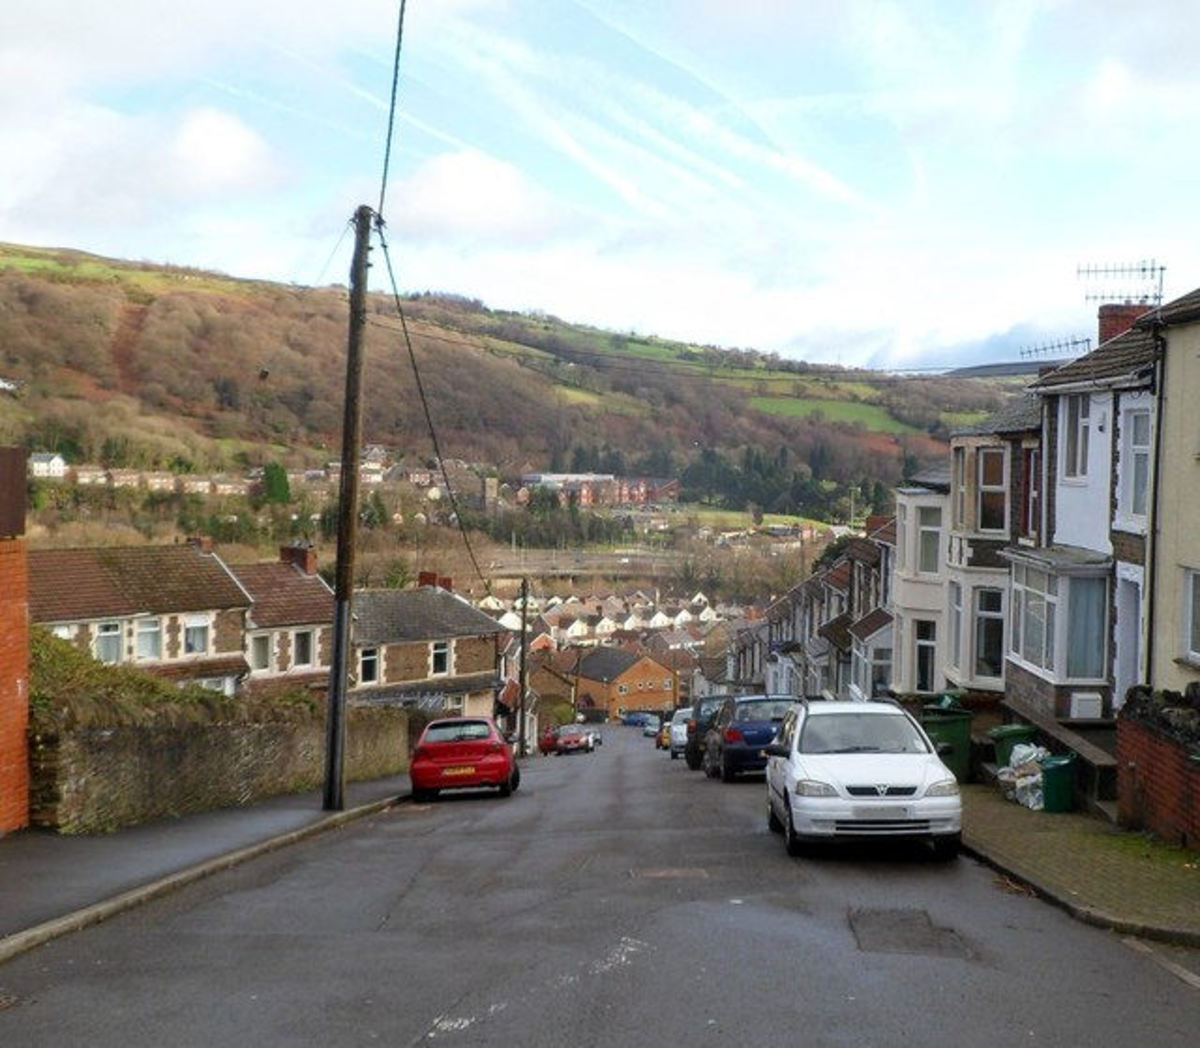 photo of Stow Hill, Treforest, Pontypridd (the town in the Rhondda Valley in South Wales where my family lived - and some still do!)